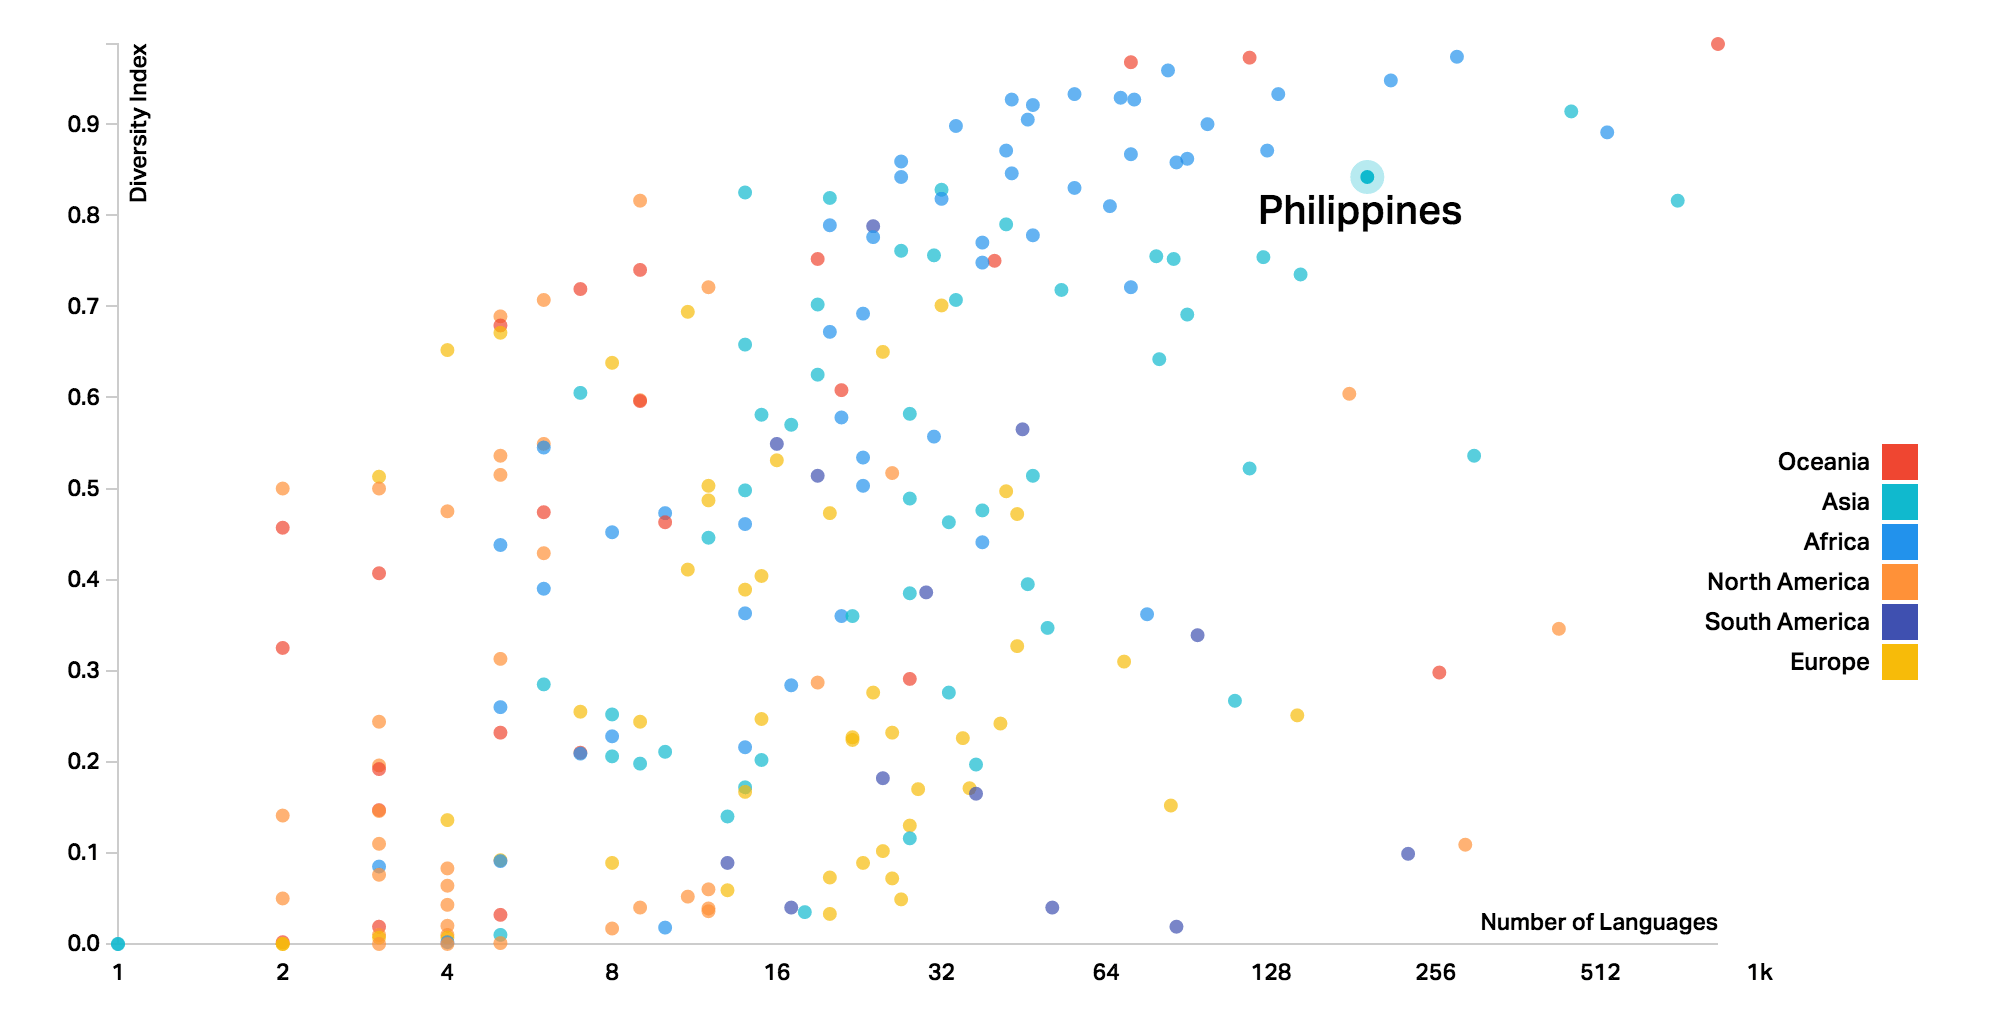 The language landscape of the Philippines in 4 maps